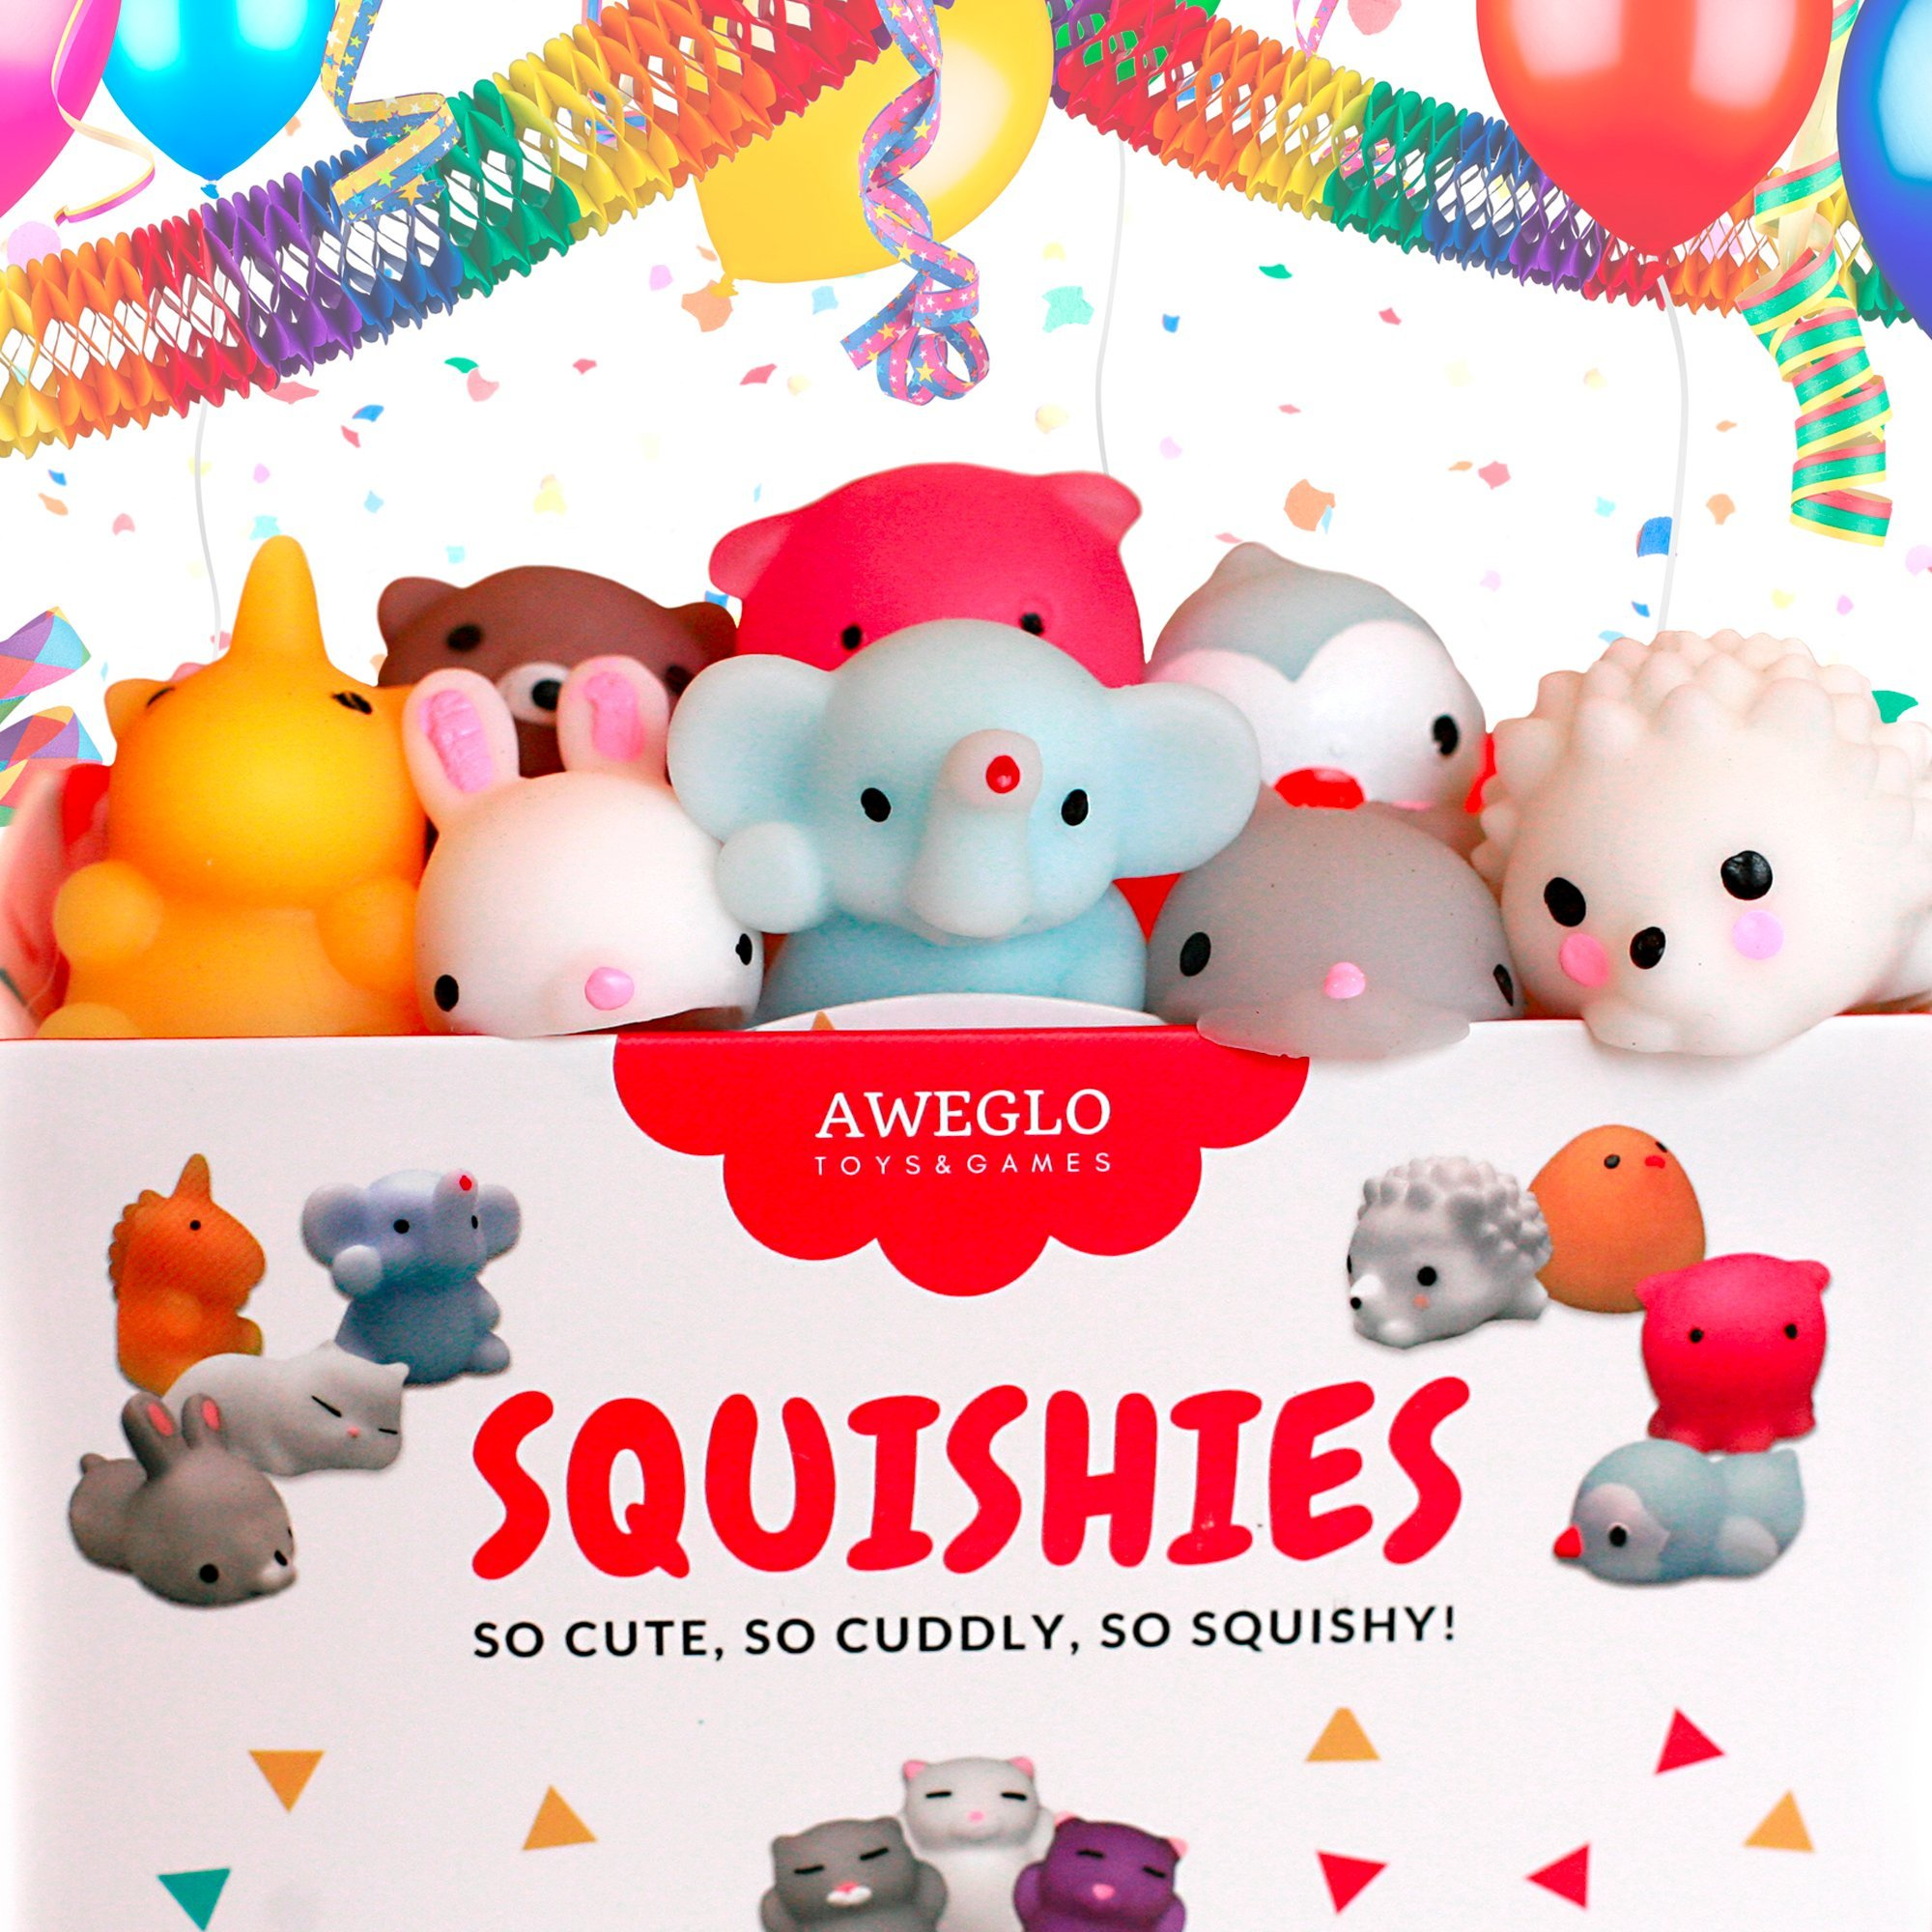 20 Mochi Squishy Toys, FREE CASE, 16 Animals 11 Colors, PARTY FAVORS AWEGLO Prime Silicone Small Mini Squishies Toy Boys Soft Kawaii Squishys Pack Kids Fidget Cat Stress Reliever No Slow Rise Sqishy's by AWEGLO Squishies (Image #6)